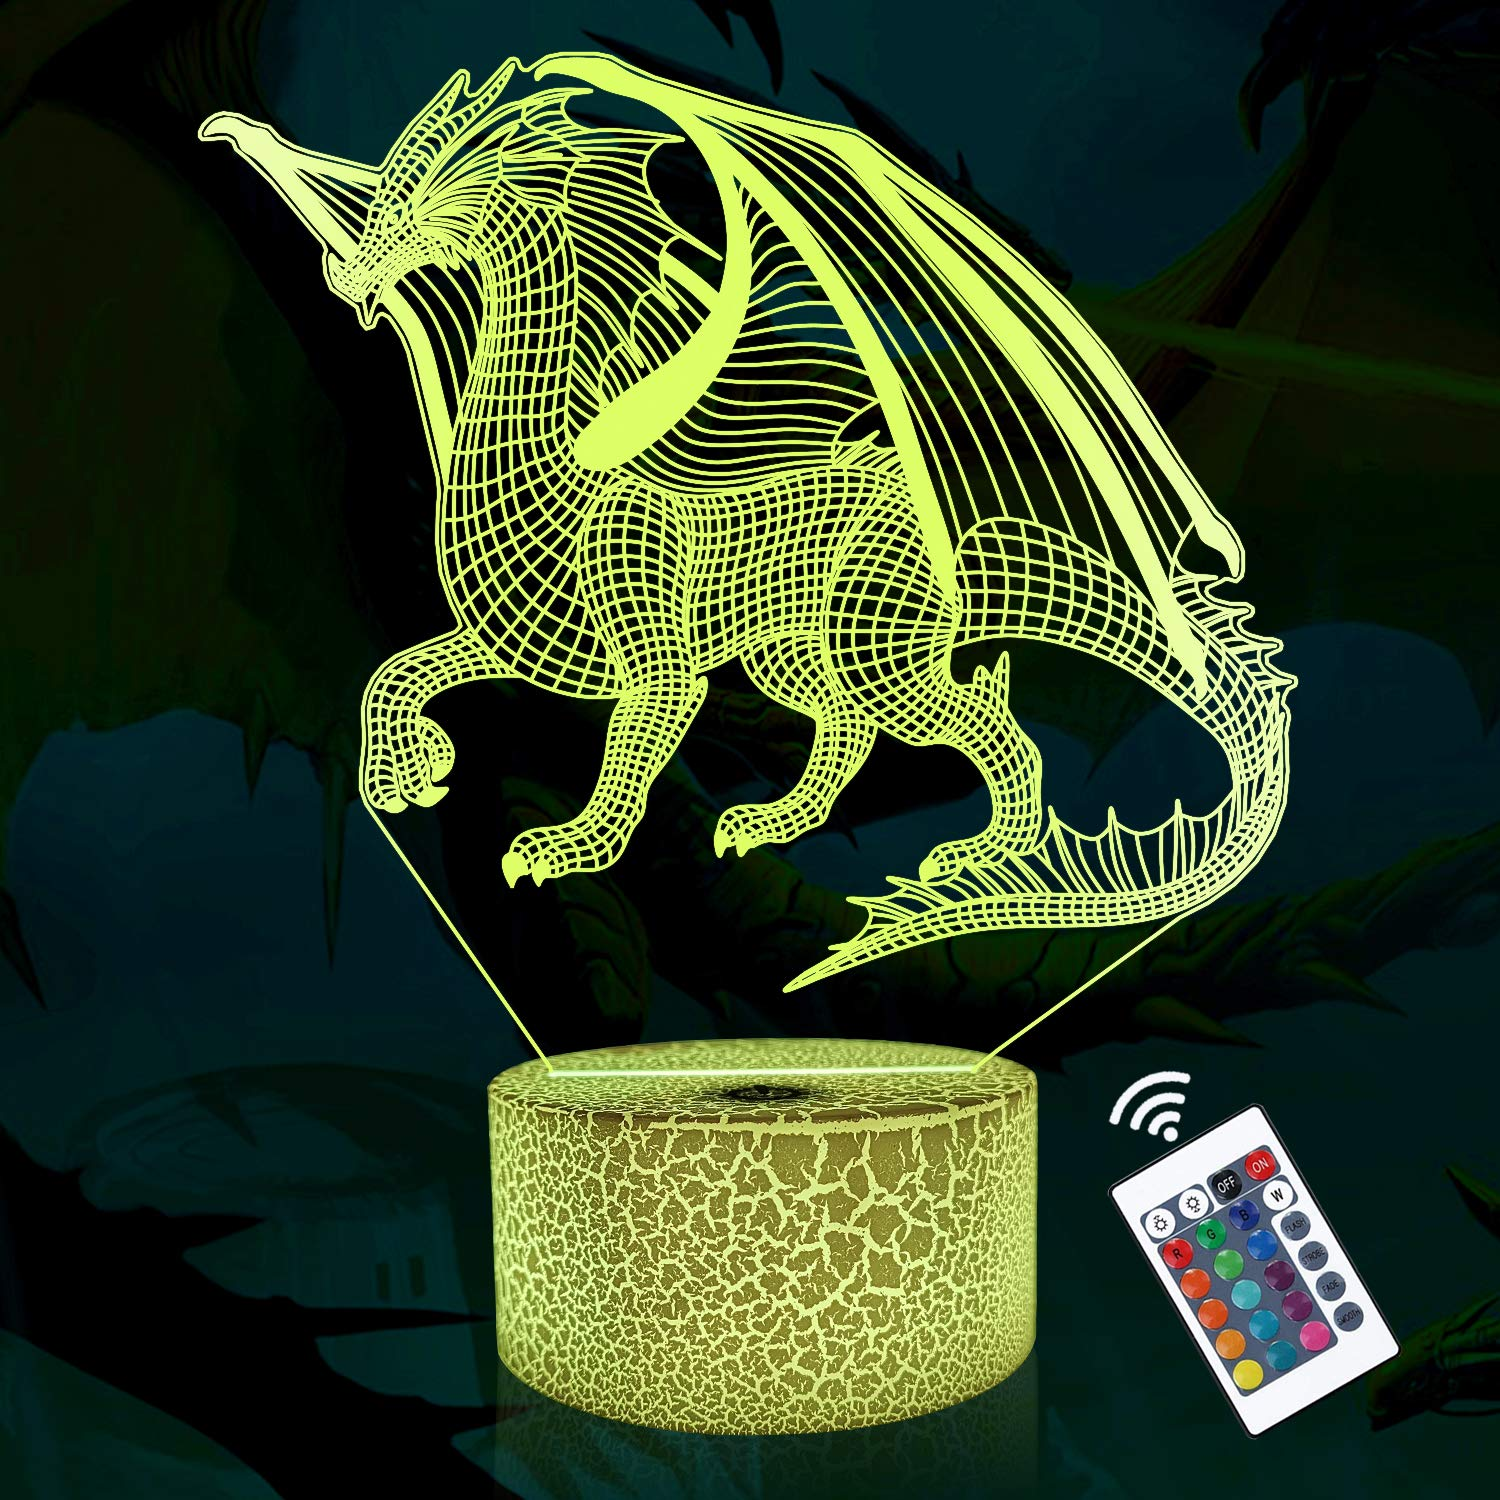 Lampeez 3D Dragon Lamp Night Light 3D Illusion lamp for Kids, 16 Colors Changing with Remote, Kids Bedroom Decor as Xmas Holiday Birthday Gifts for Boys Girls